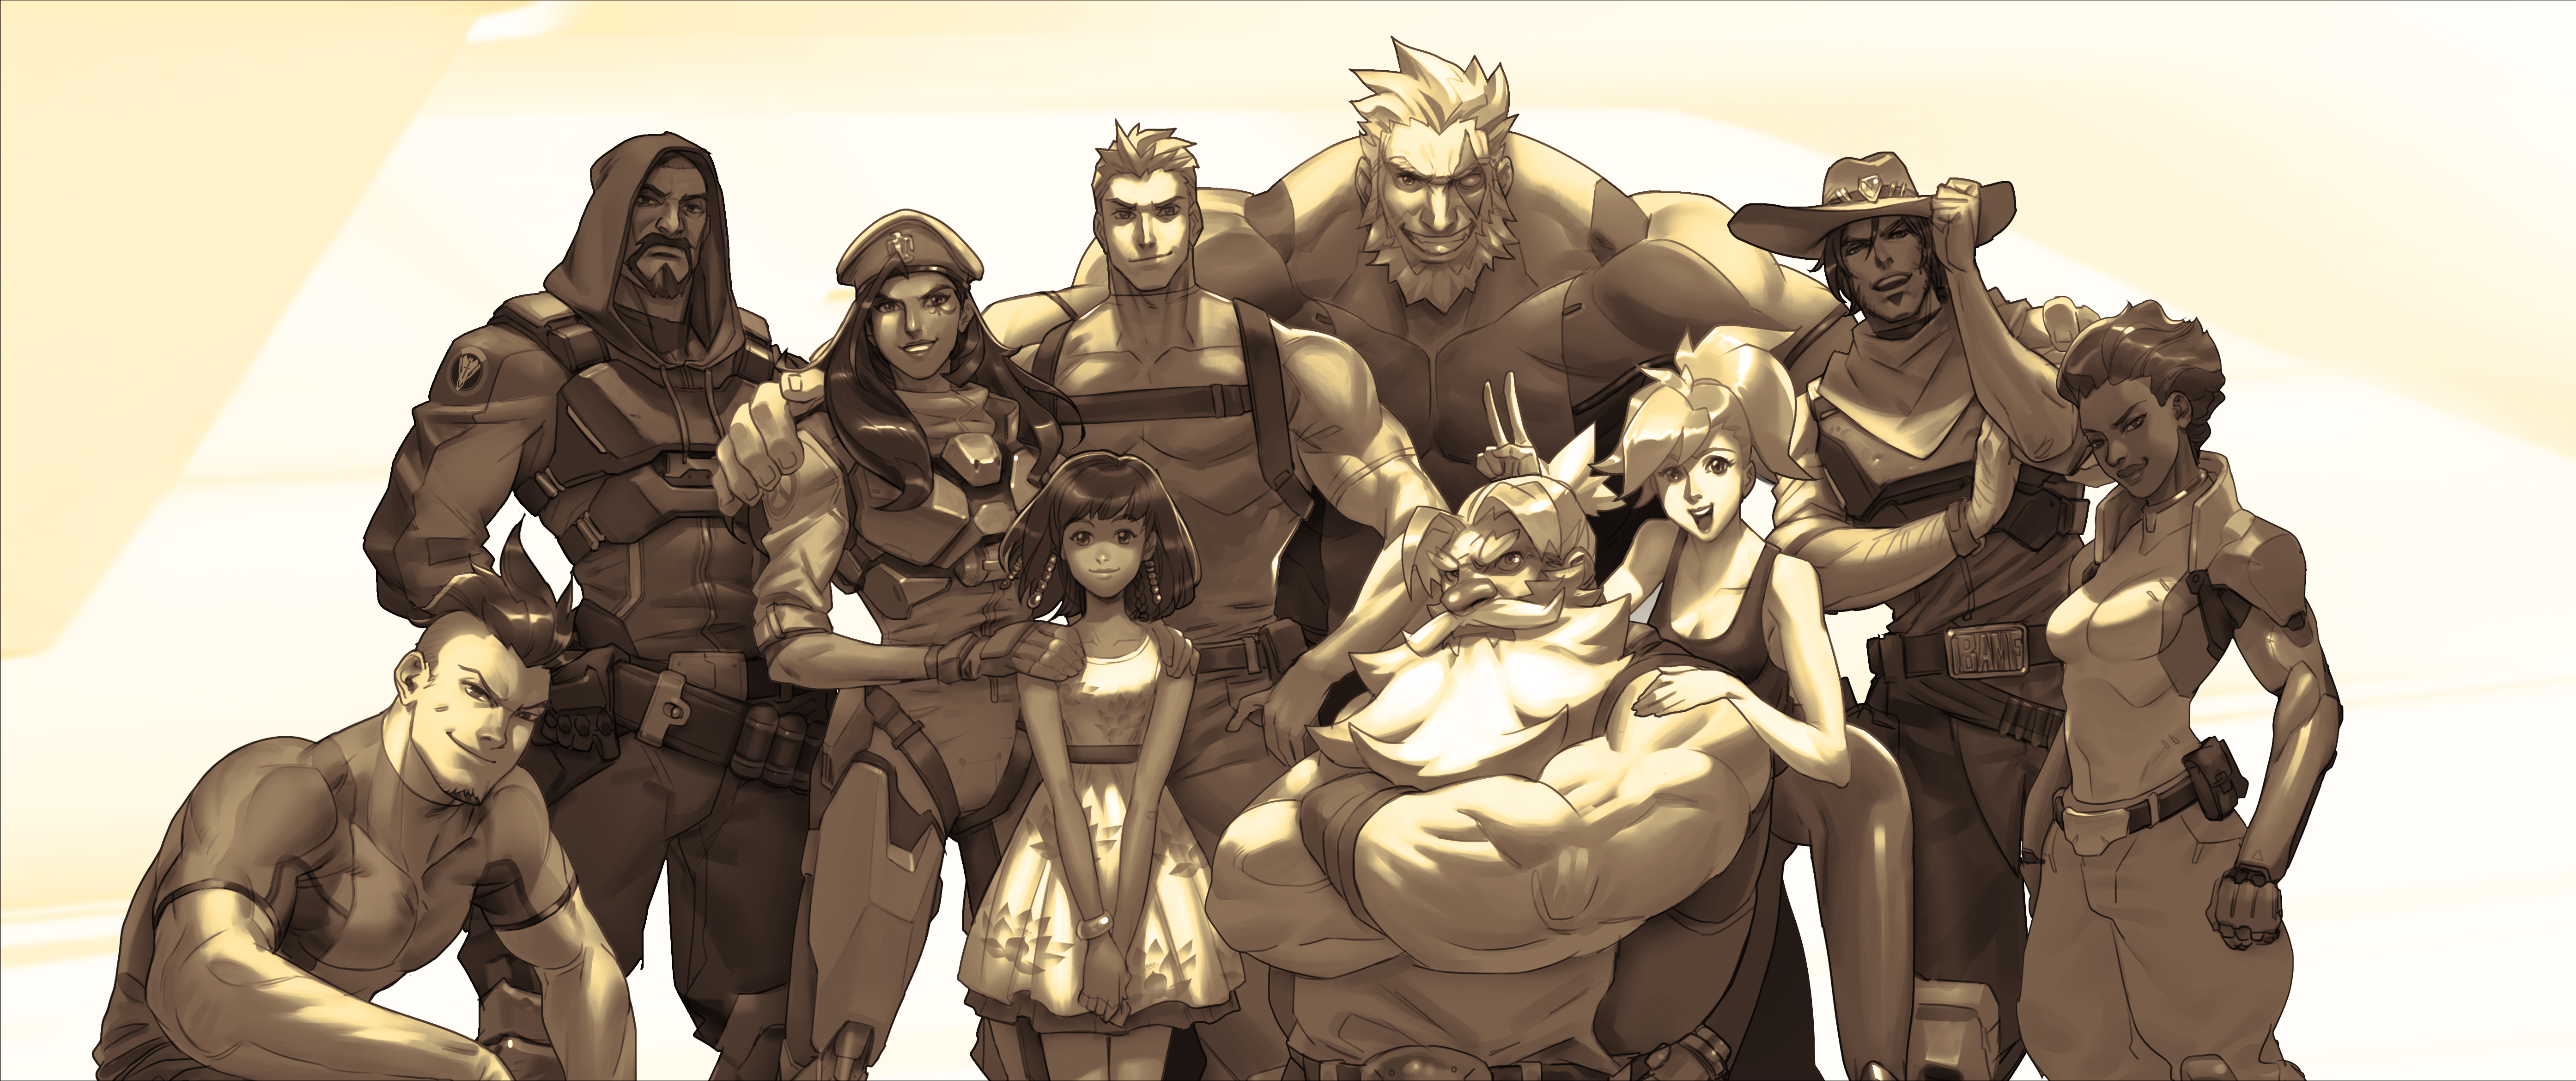 Http Danbooru Donmai Us Data Ana Blackwatch Reyes Mccree Mercy Pharah And Others Overwatch Drawn By Alpha Gamboa 5c23416ffae6141c10bedbc1bfeca5